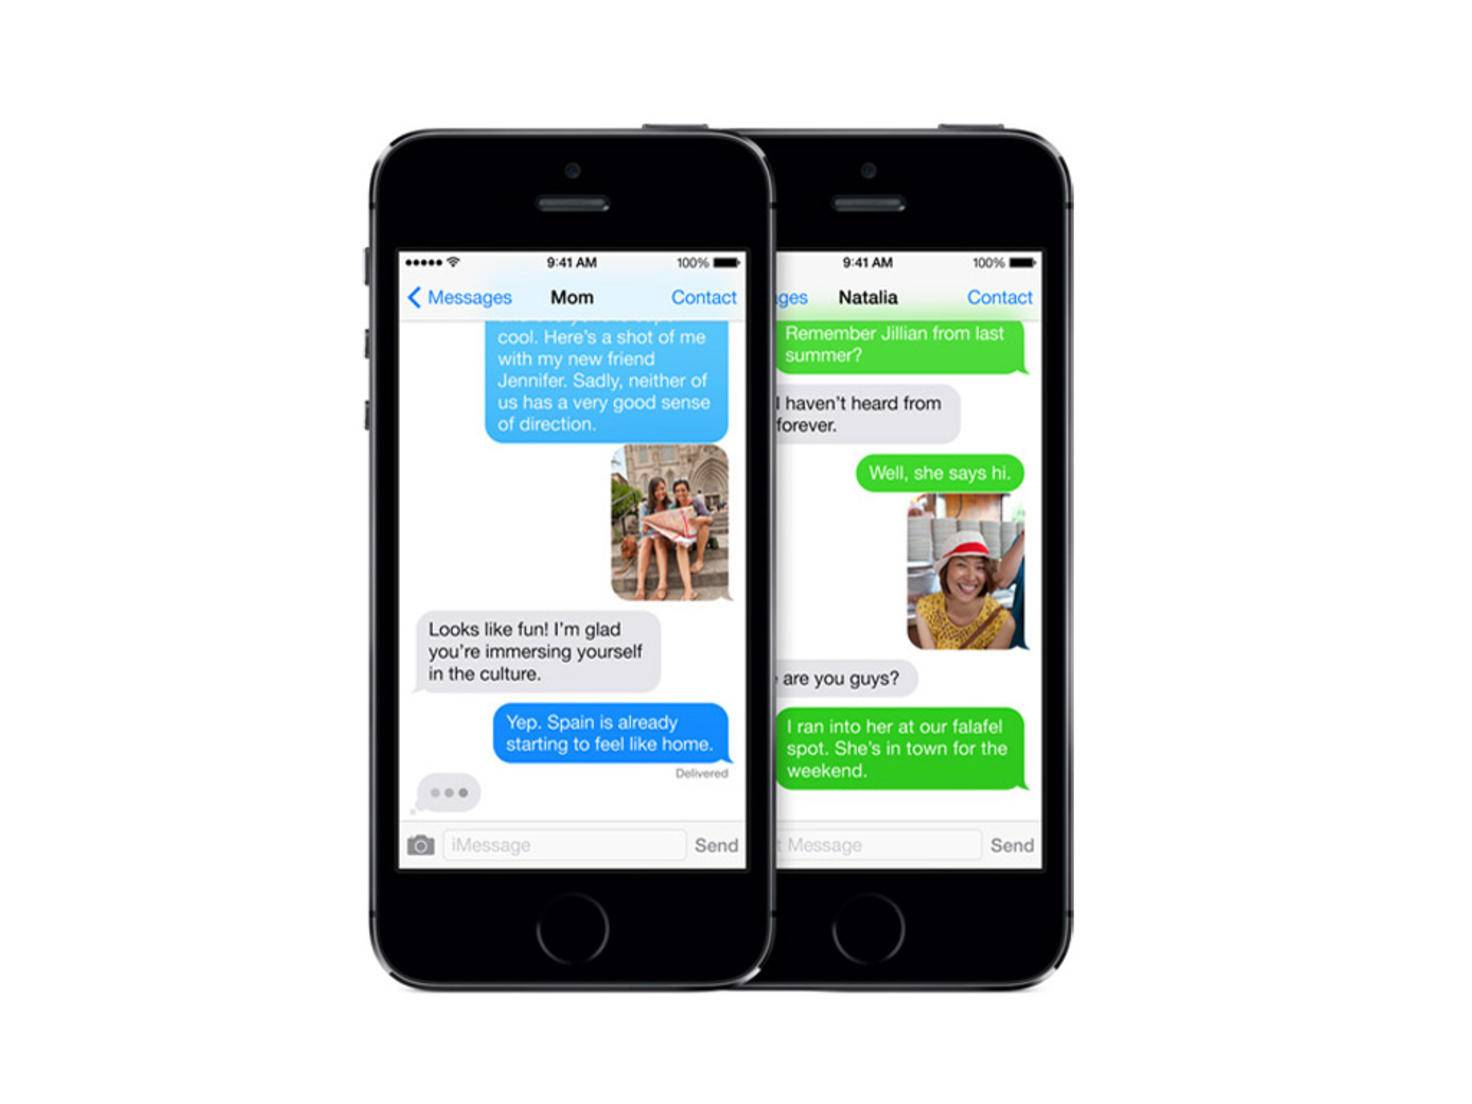 iPhone-6-imessage